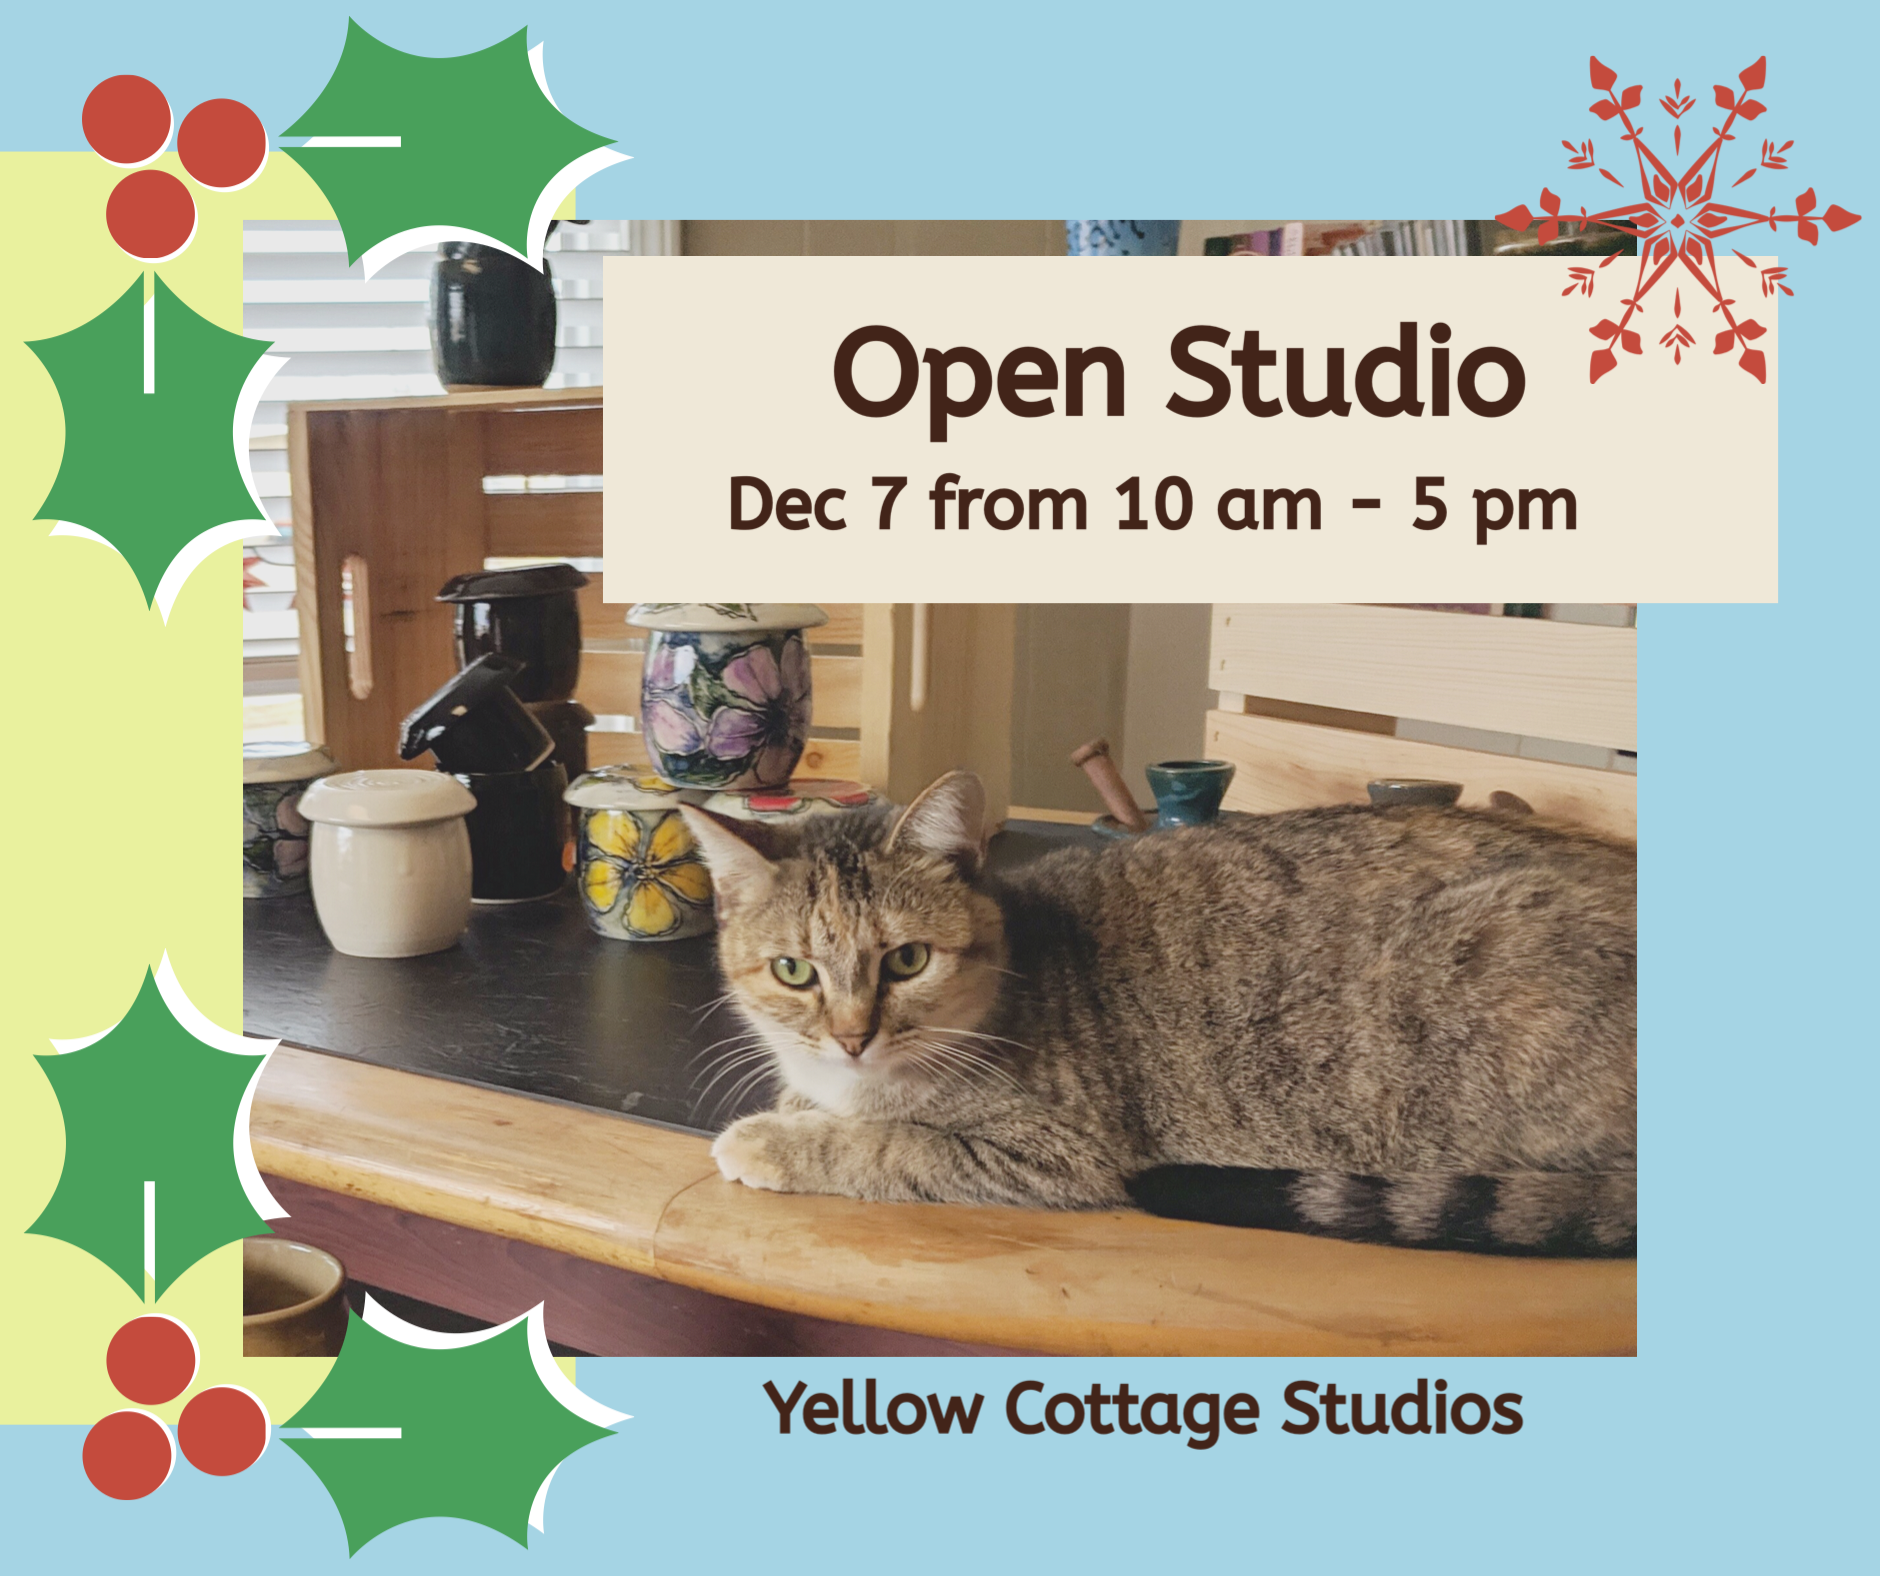 Holiday Open Studio/Sale @ Yellow Cottage Studios